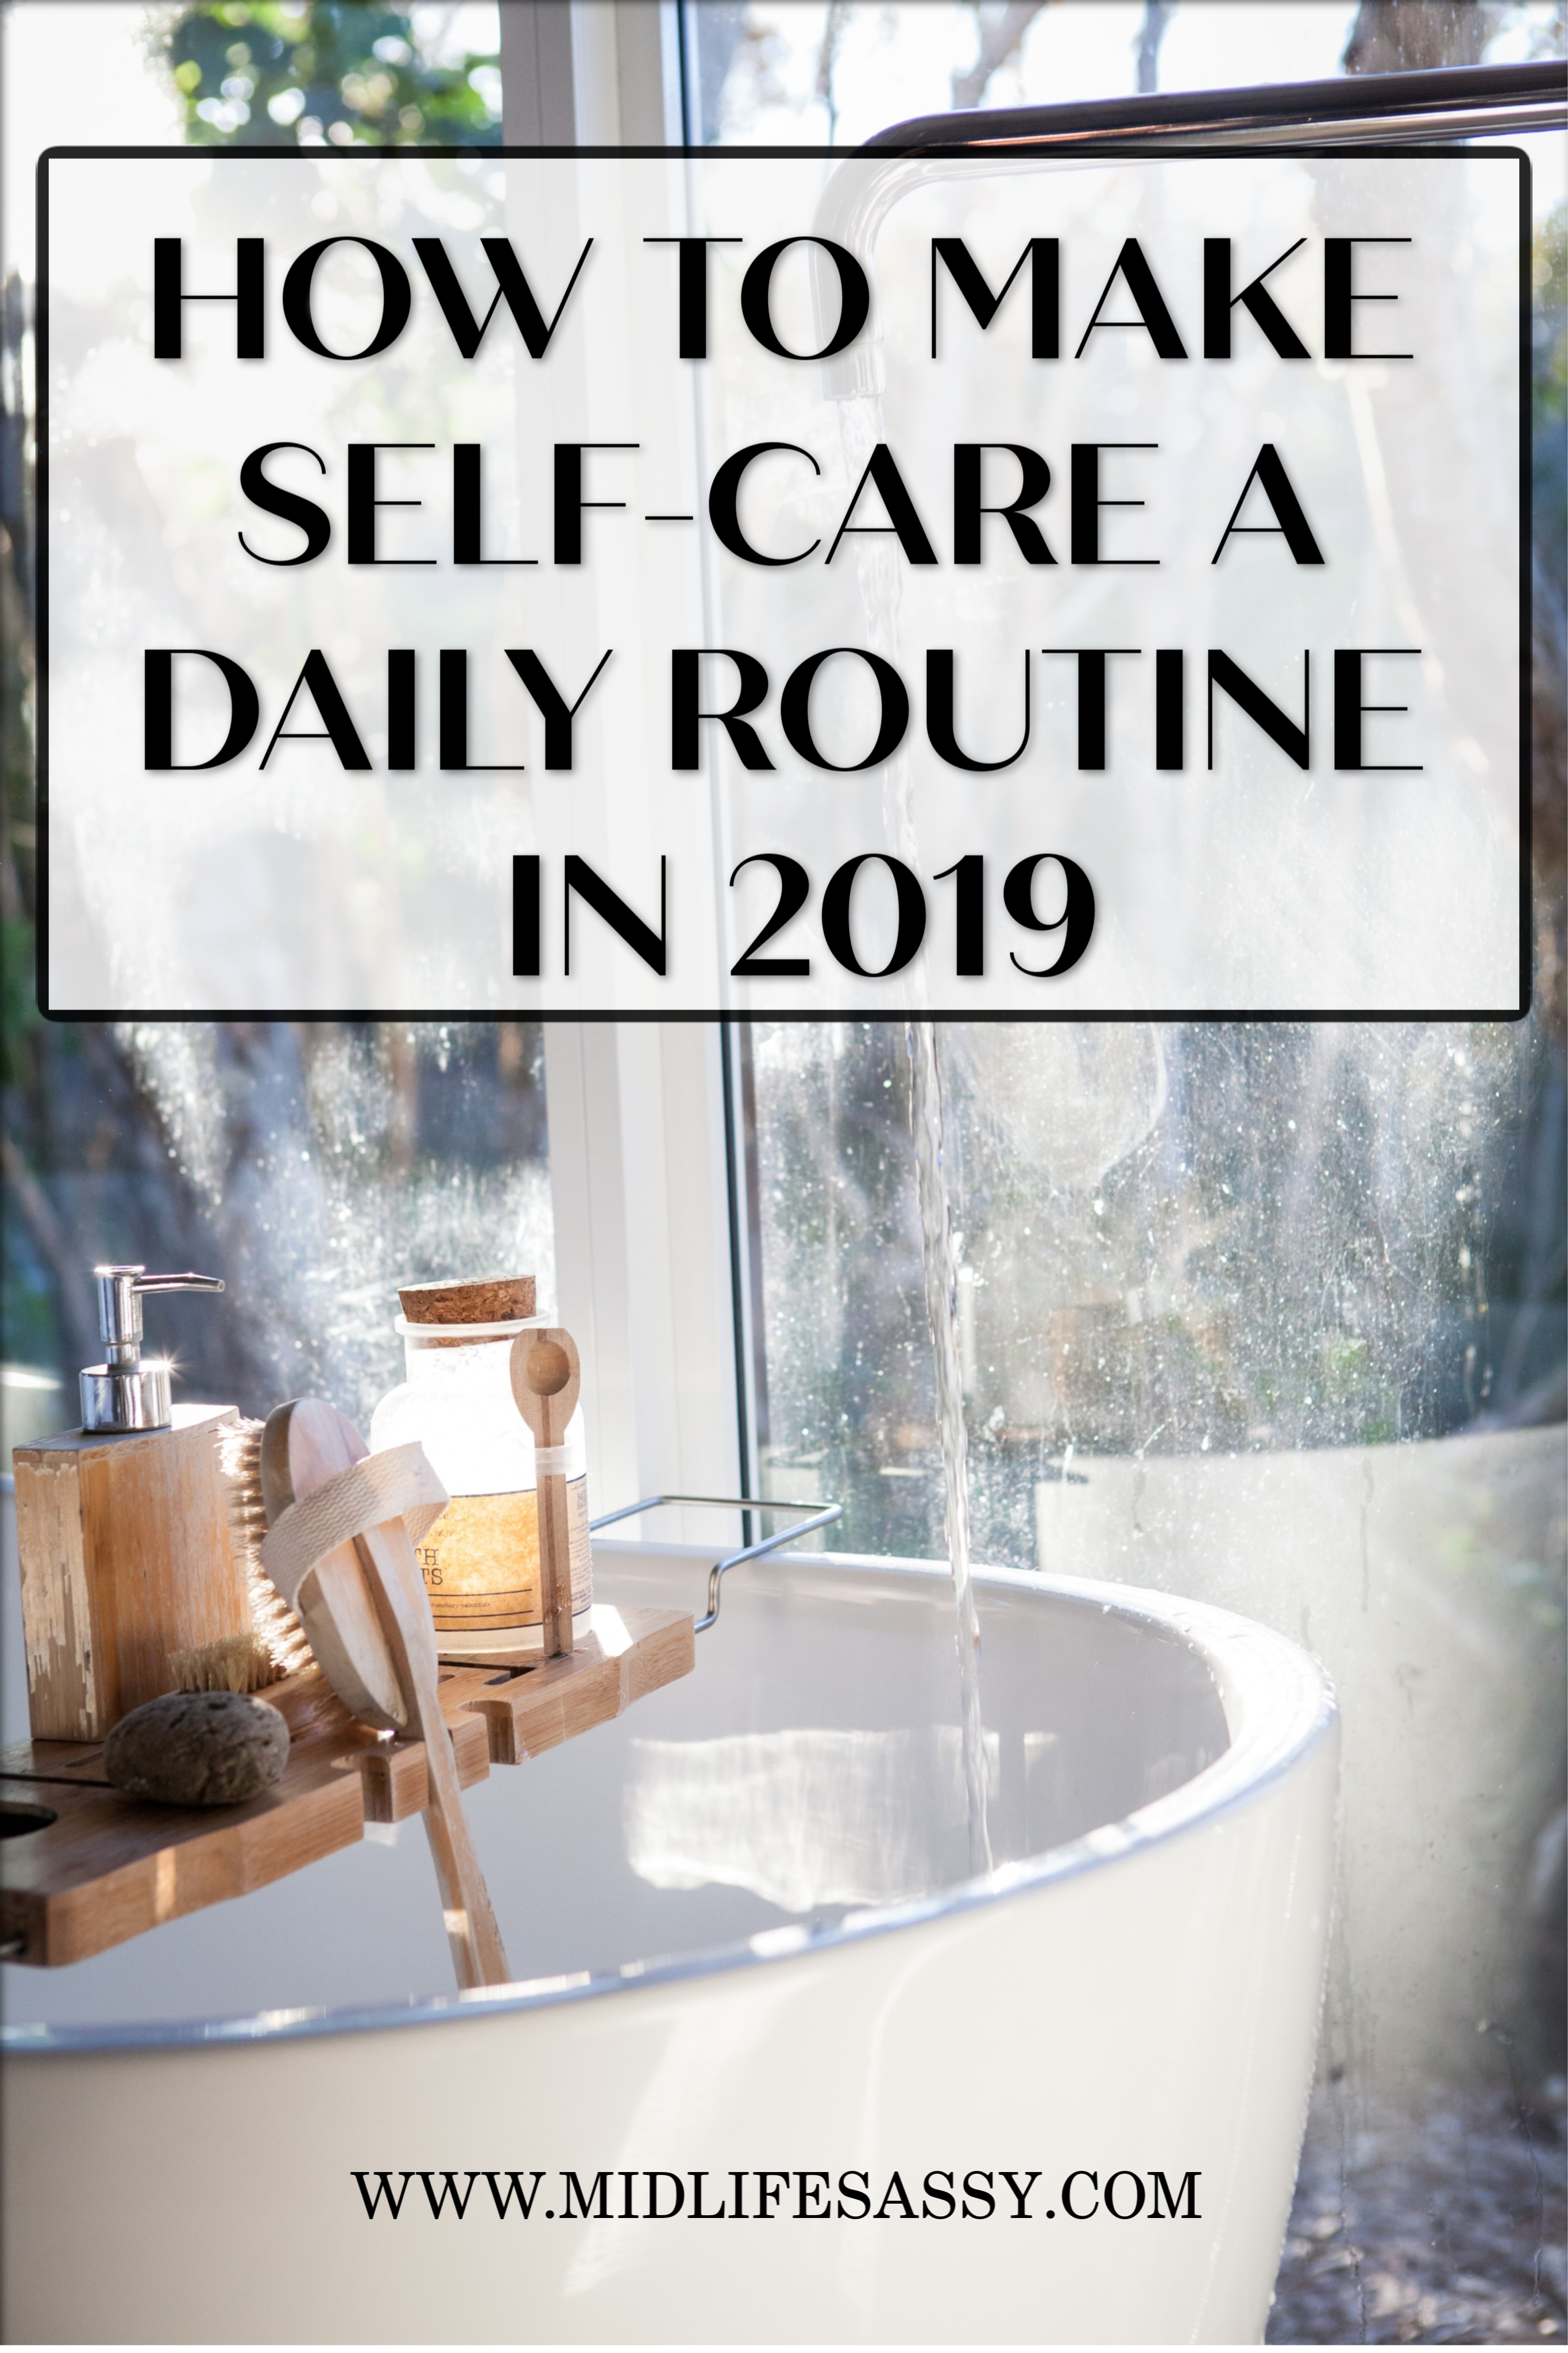 Self care post 3 - HOW TO MAKE SELF-CARE A DAILY ROUTINE IN 2019